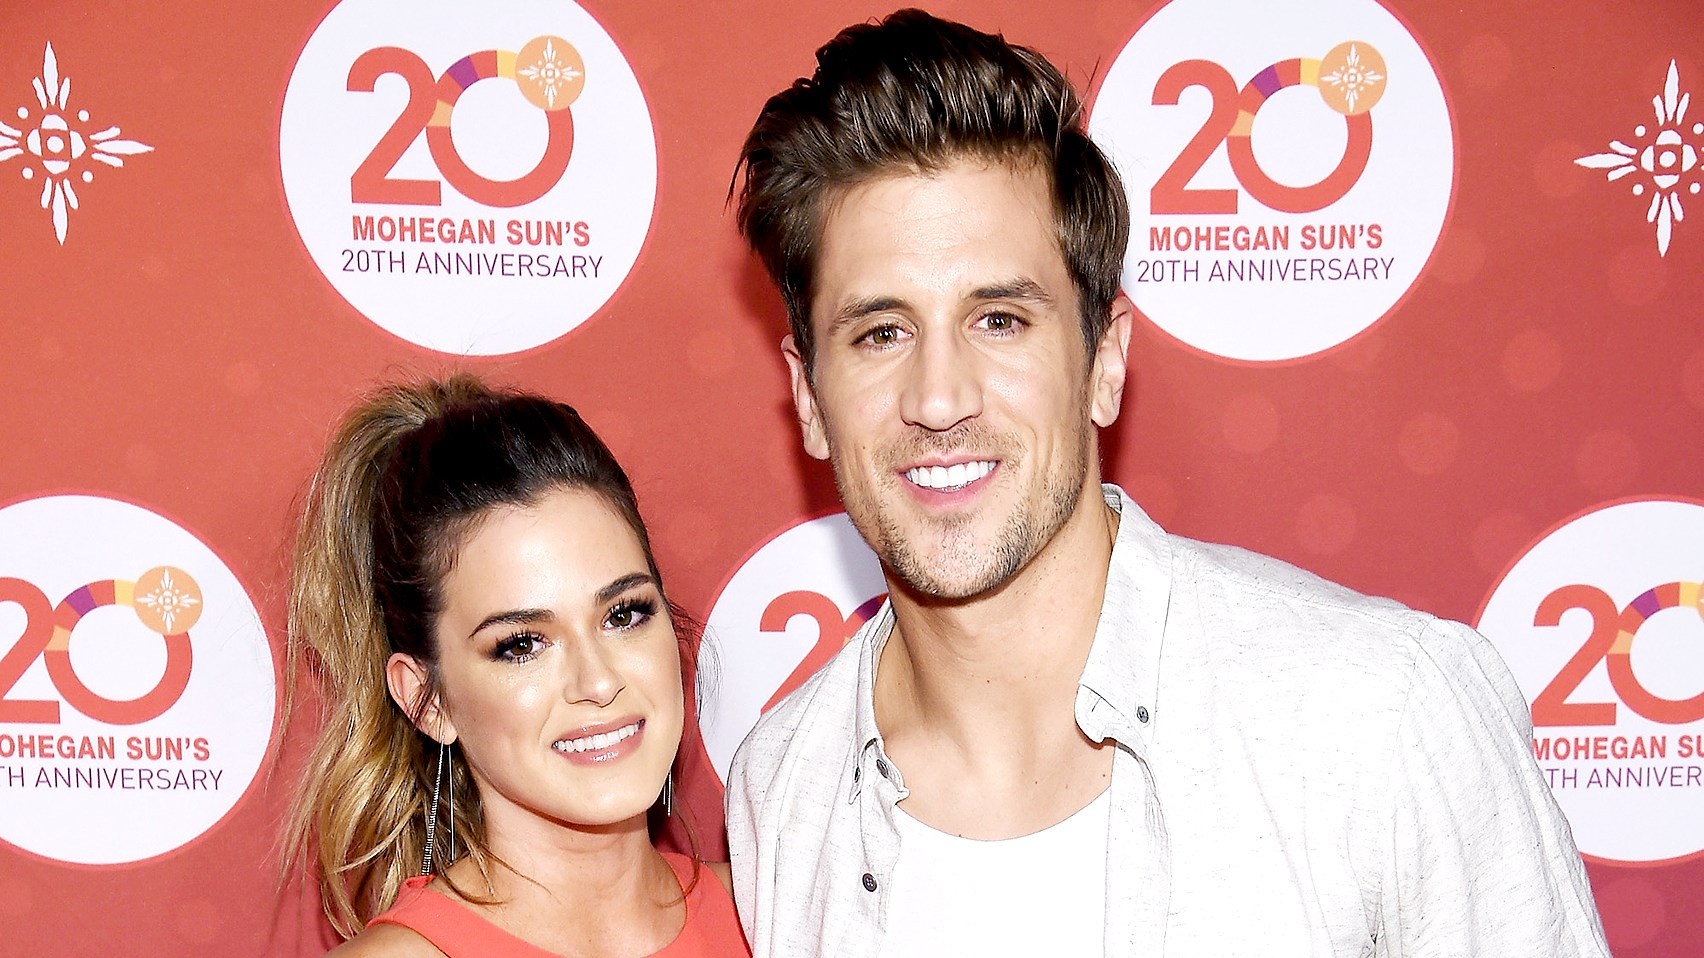 jojo-fletcher-and-jordan-rodgers-zoom-b6157755-961f-4d6e-84c9-f772318fed99